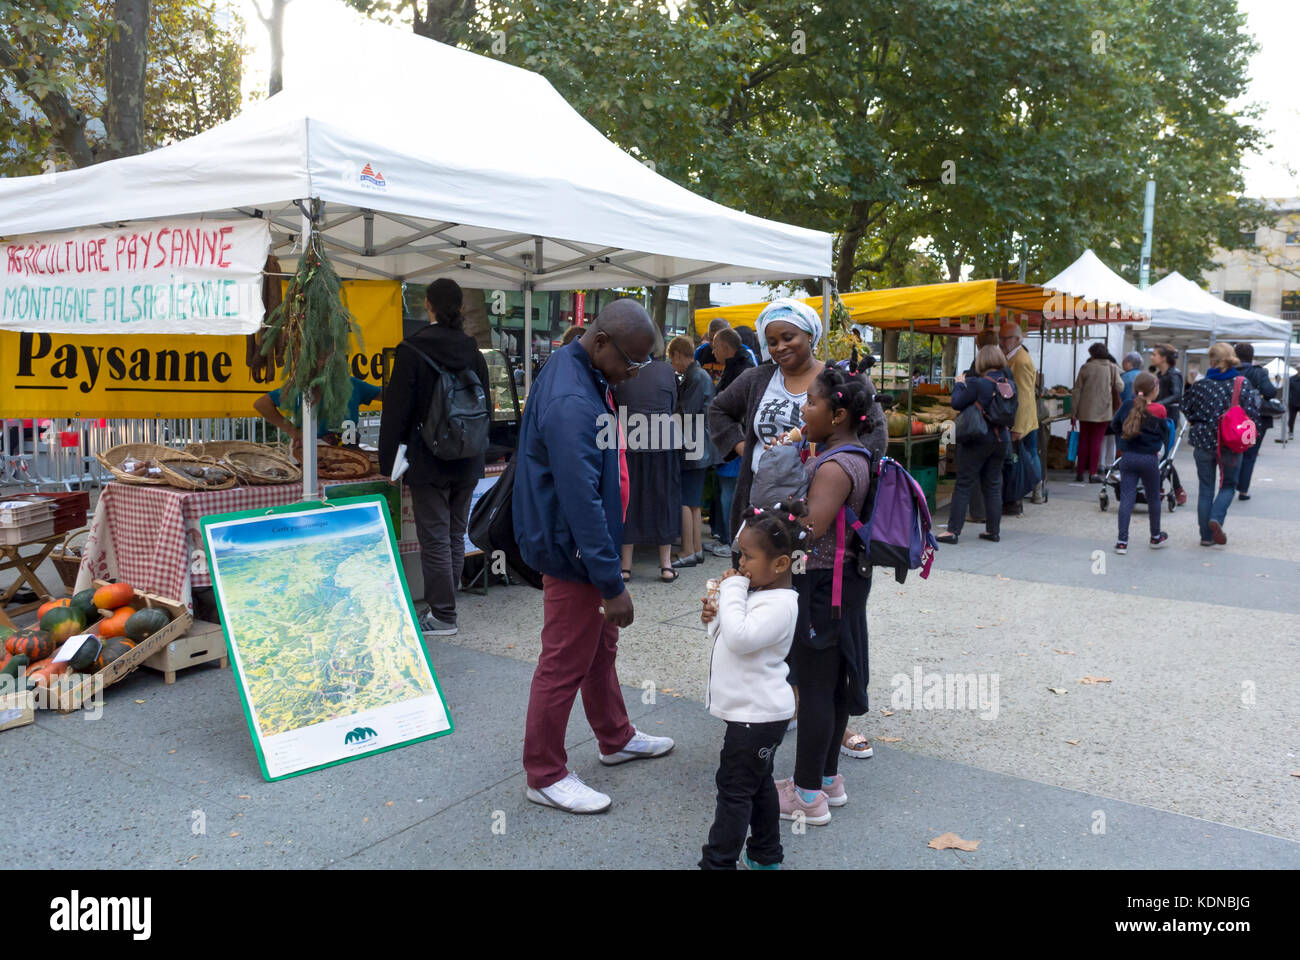 Montreuil, France, African Family Shopping, Local Products, French Farmer's Organic Food Market on Public Square - Stock Image